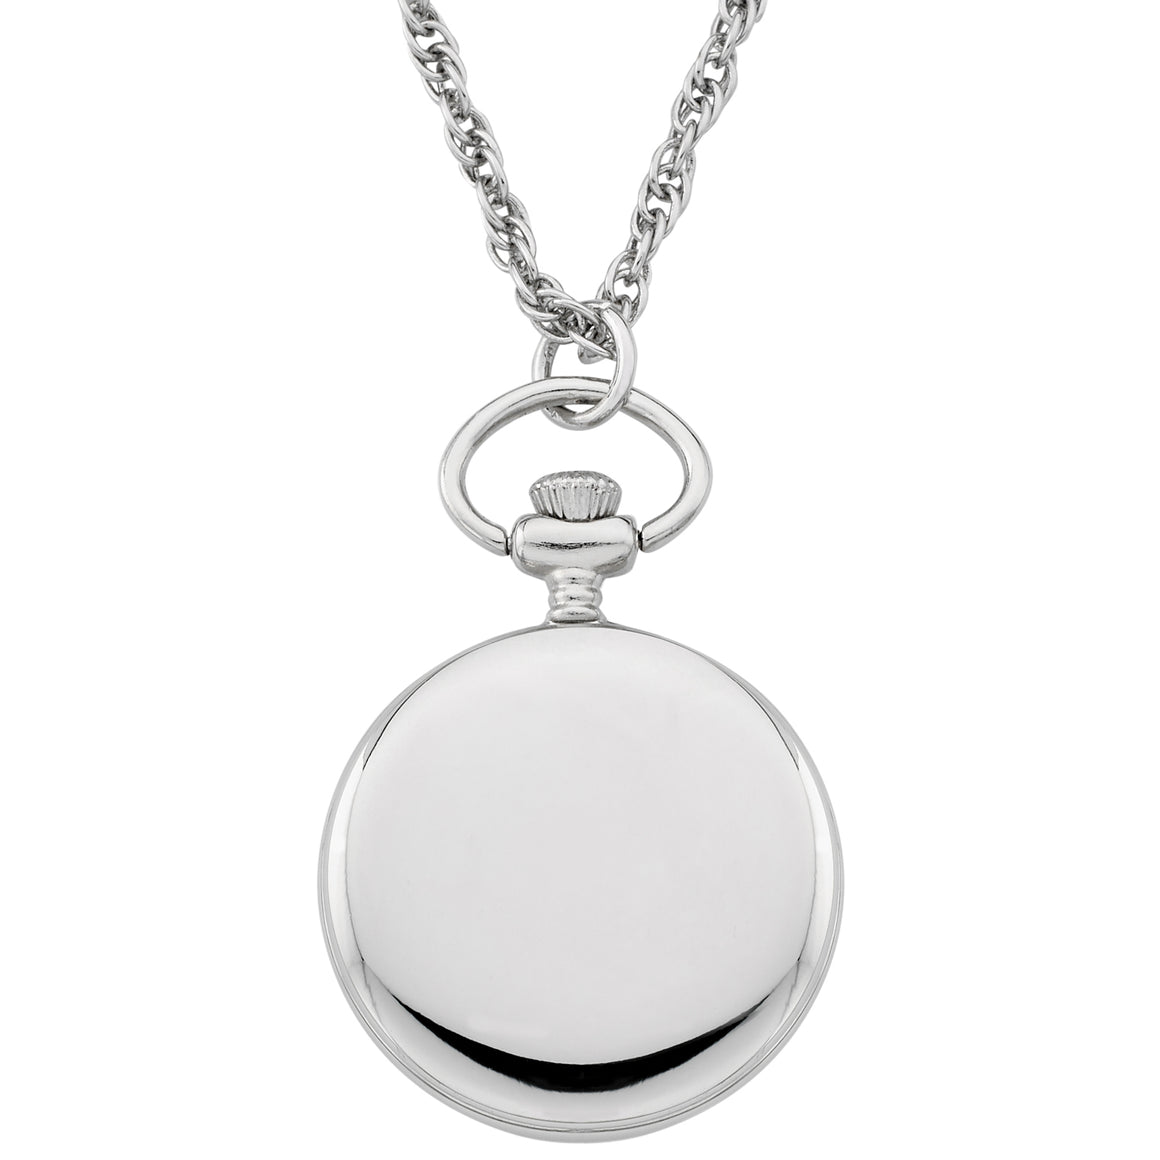 Gotham Women's Silver-Tone Open Face Pendant Watch With Chain # GWC14135SA - Gotham Watch